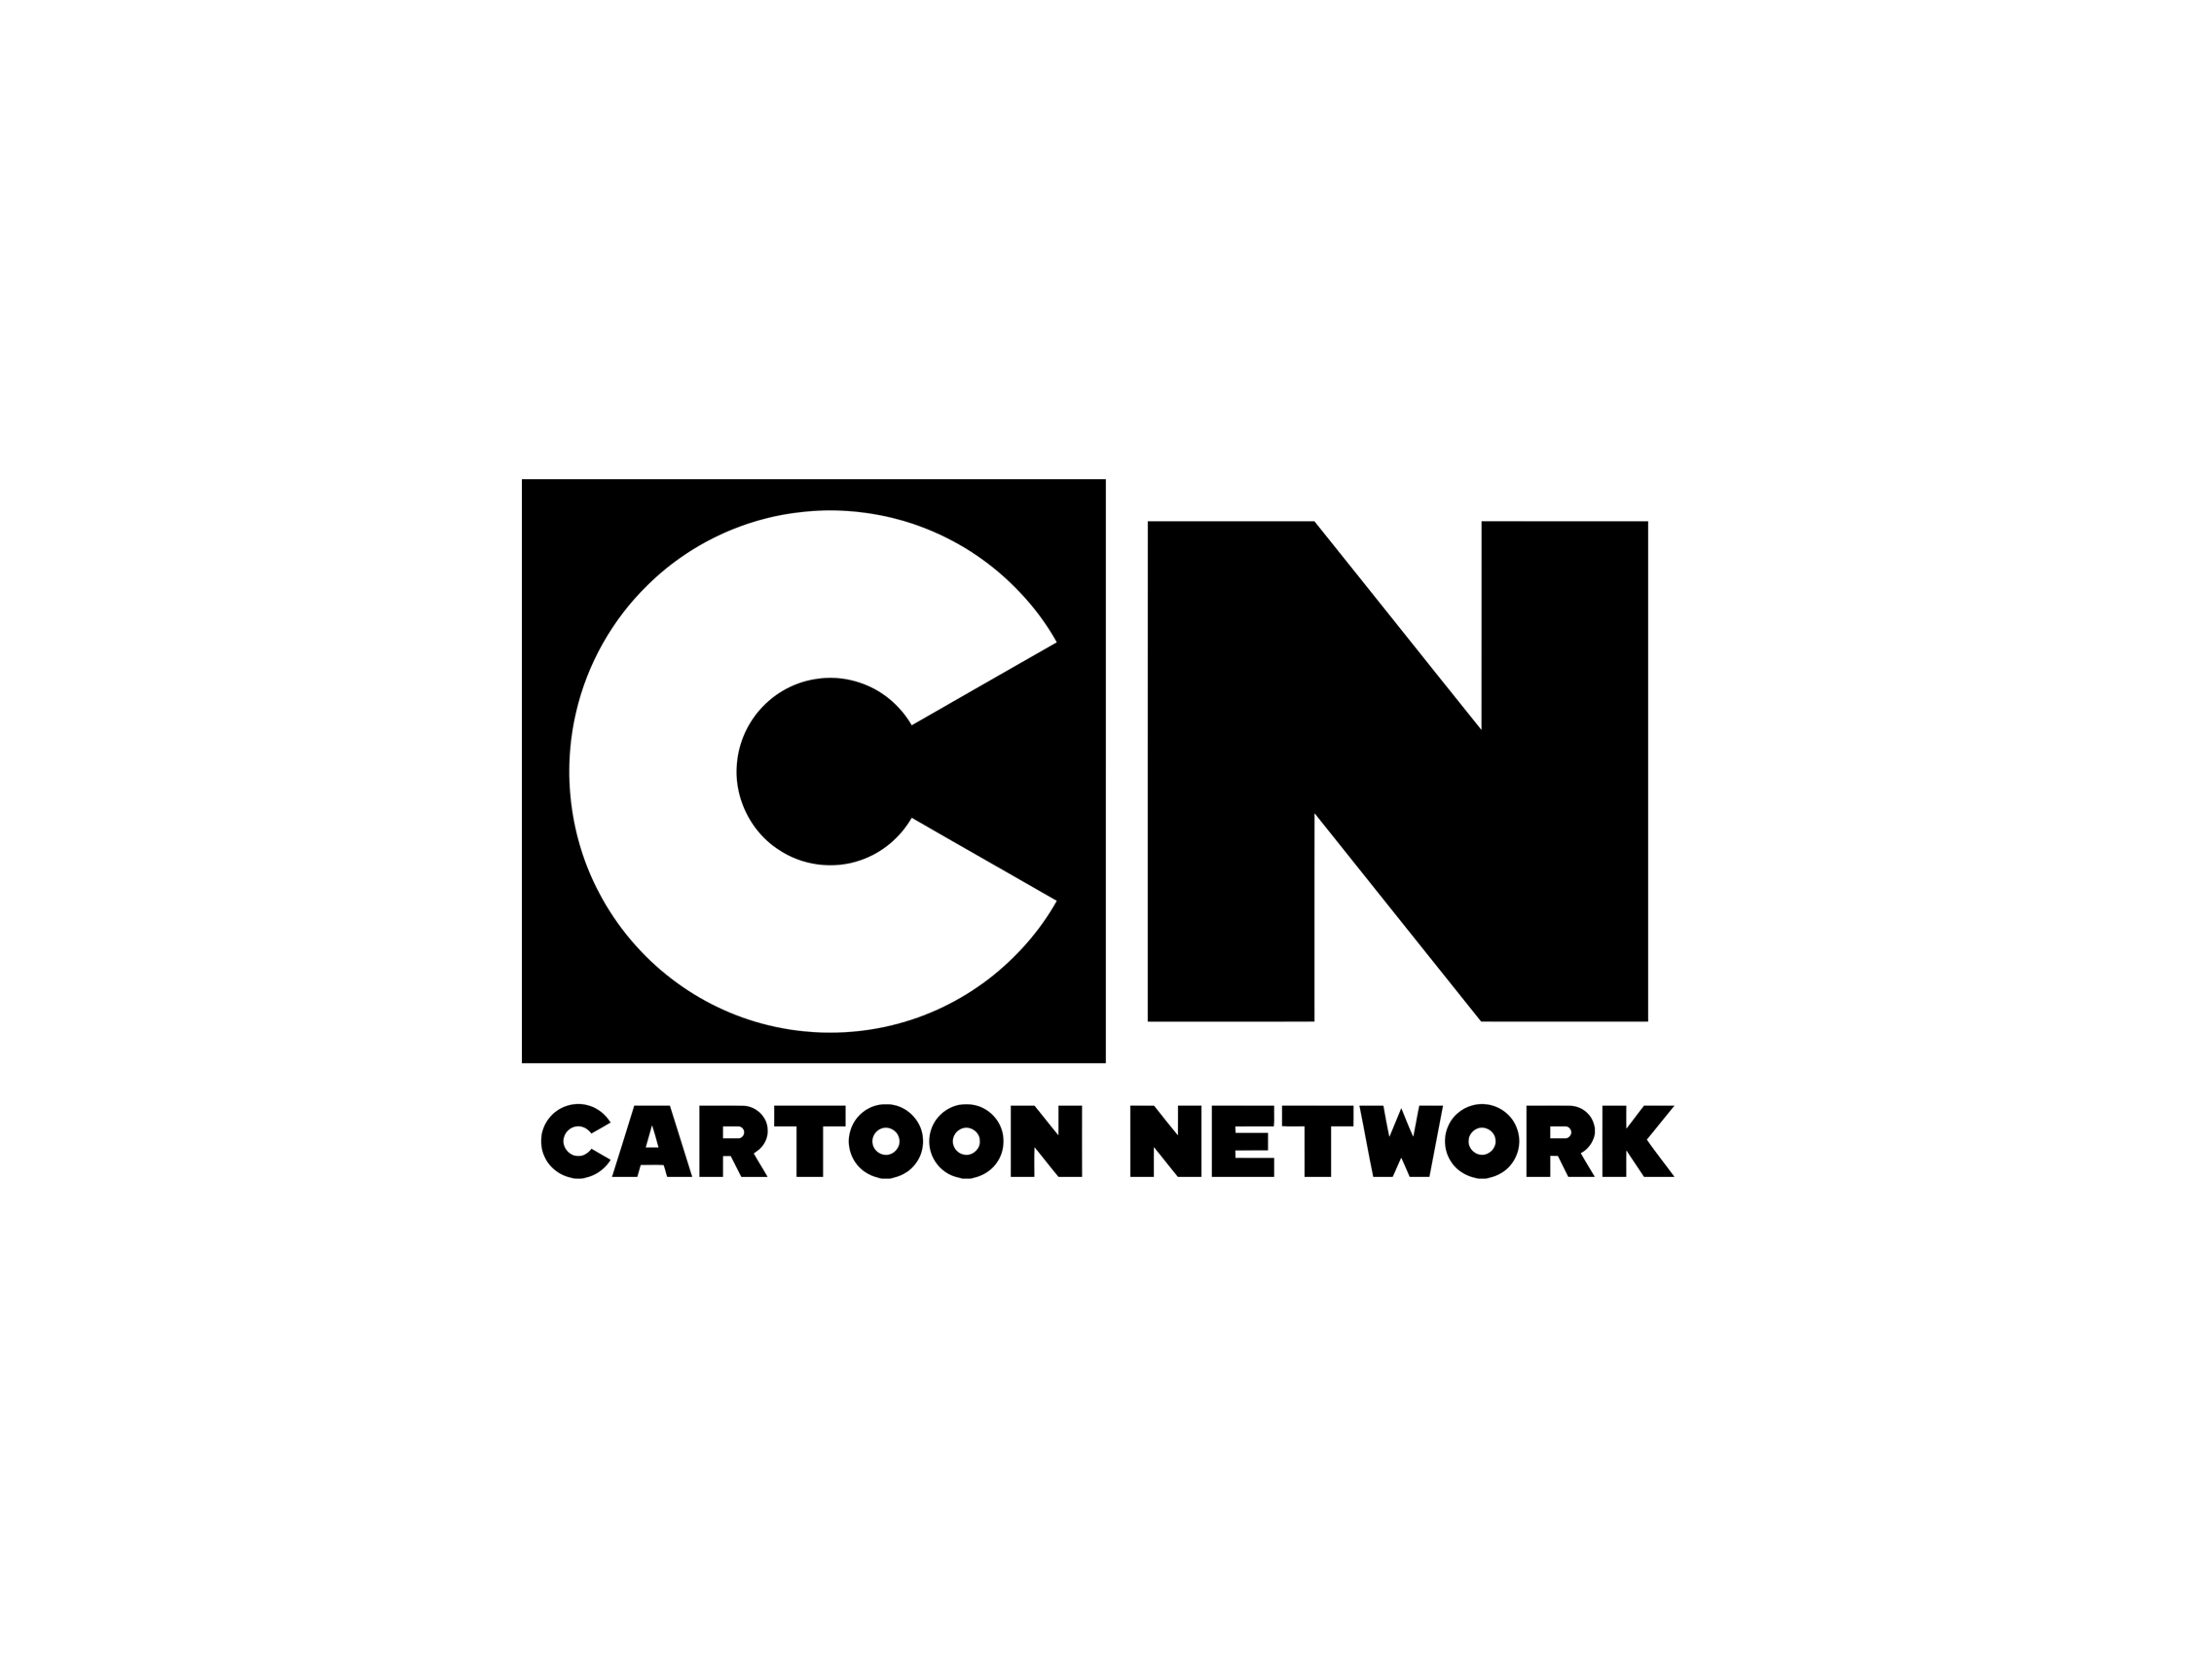 Cartoon network png. Over the air digital